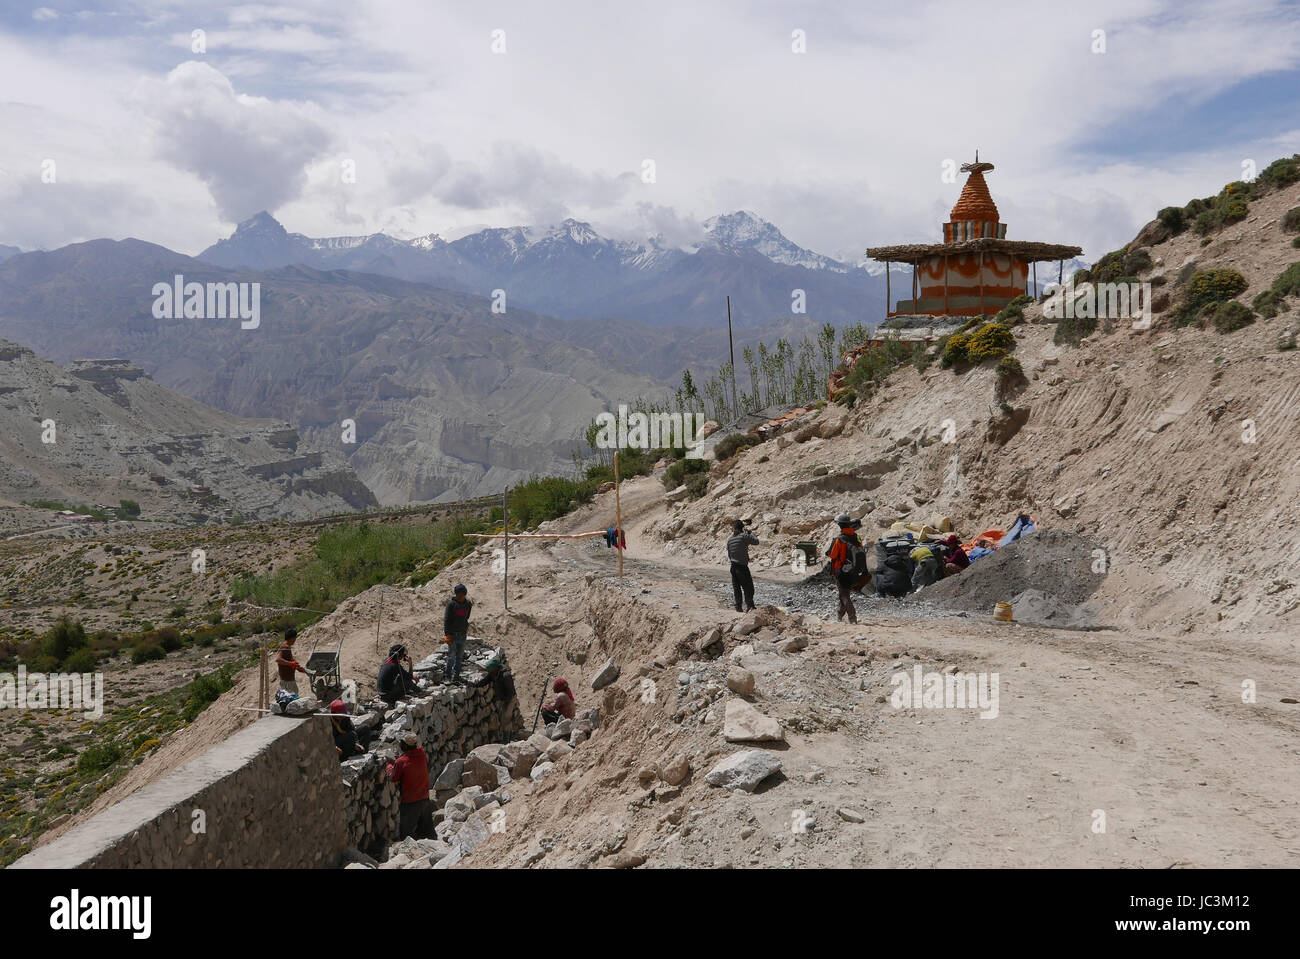 The chinese are building a road through Mustang to link up through India, it will disrupt trekking!! Stock Photo